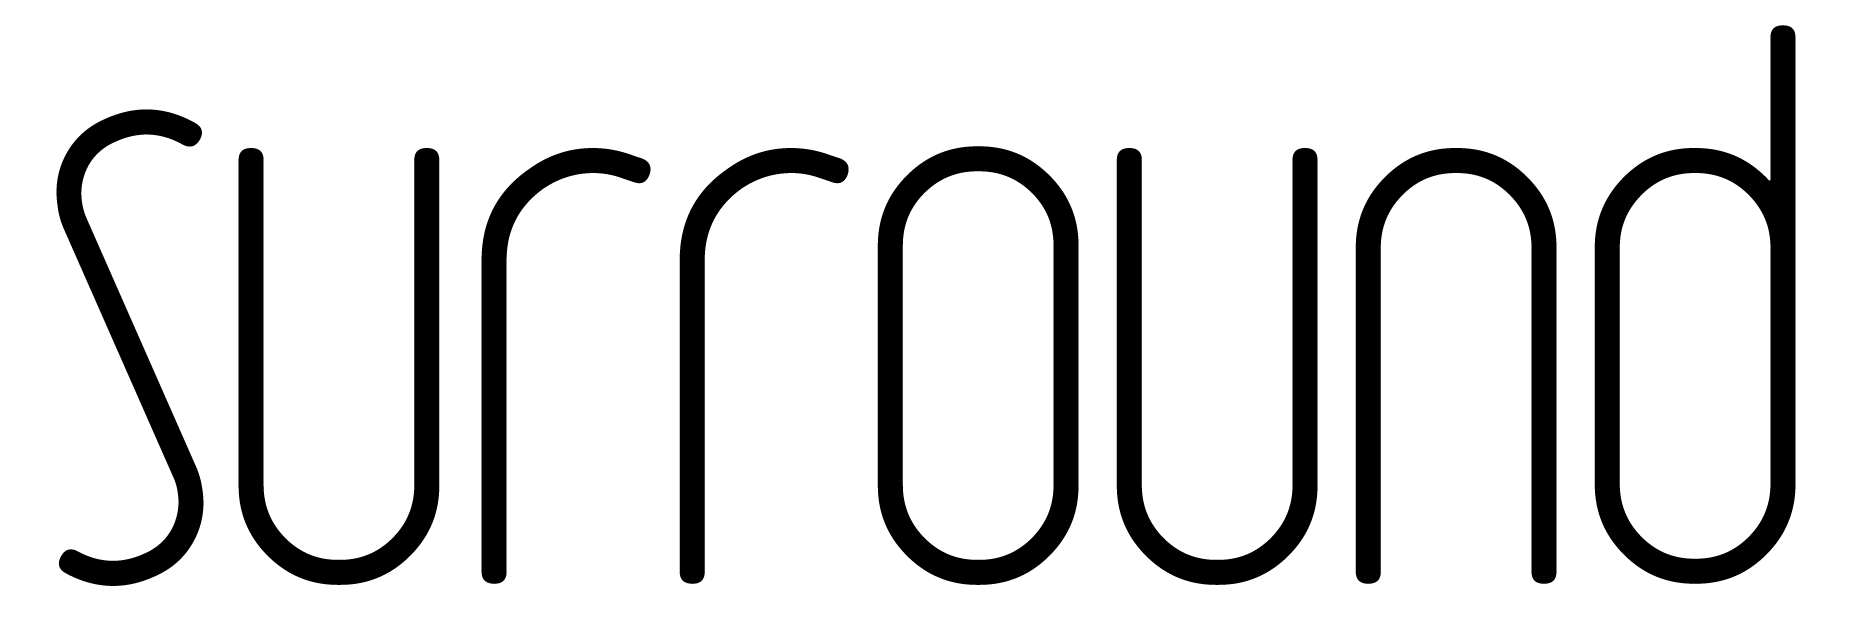 Surround Magazine logo